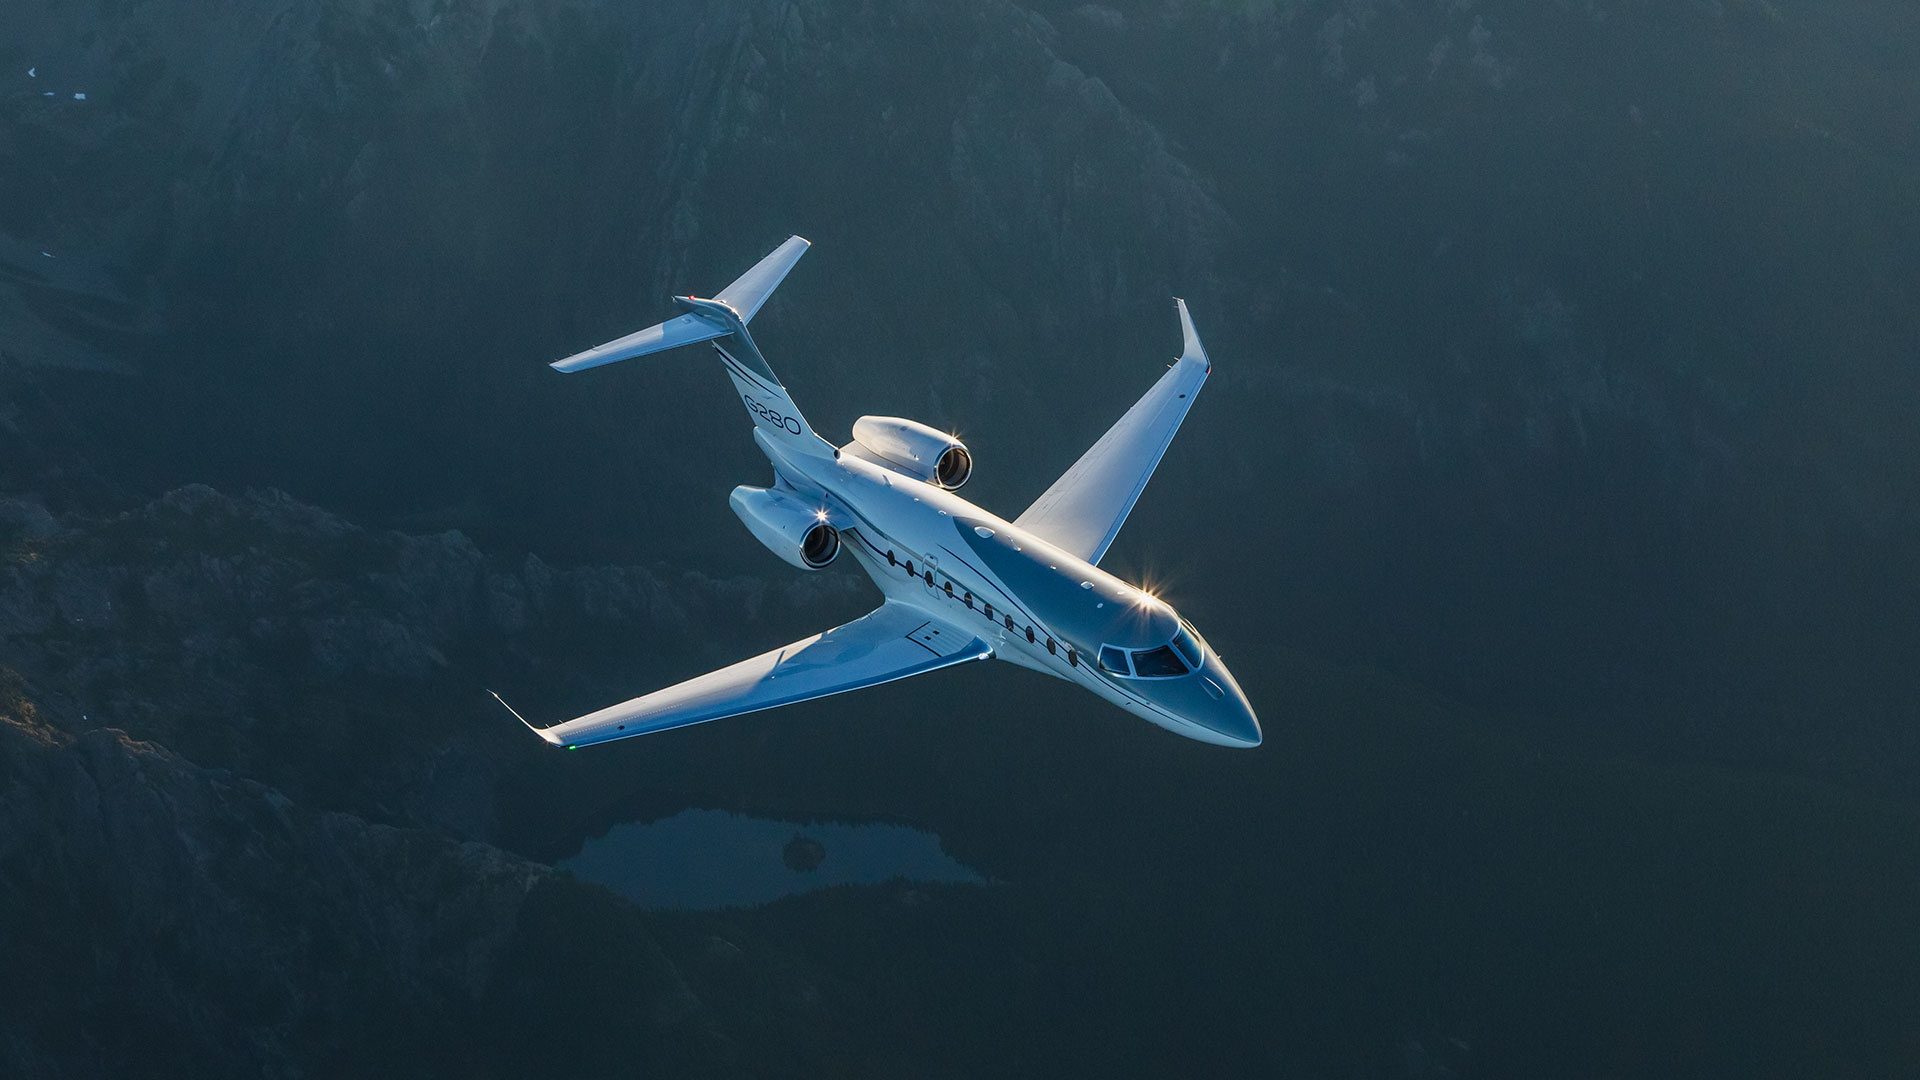 G280 flying over mountains